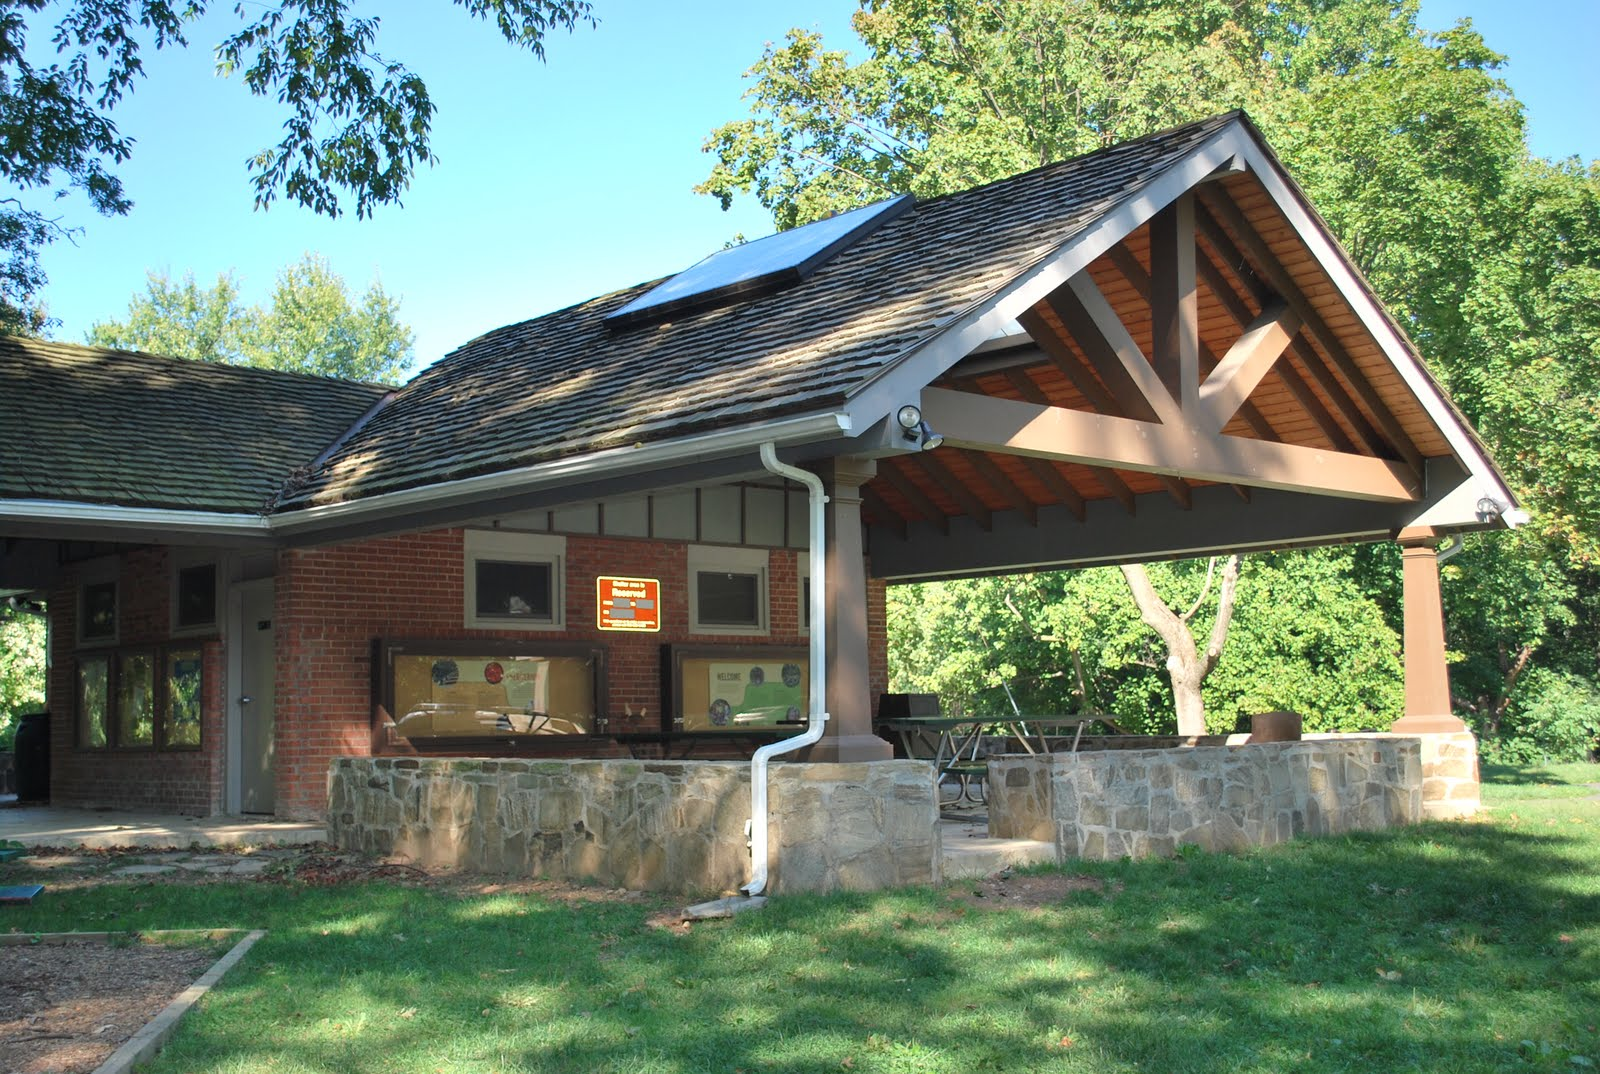 Small Park Shelters : The next best thing potomac overlook regional park